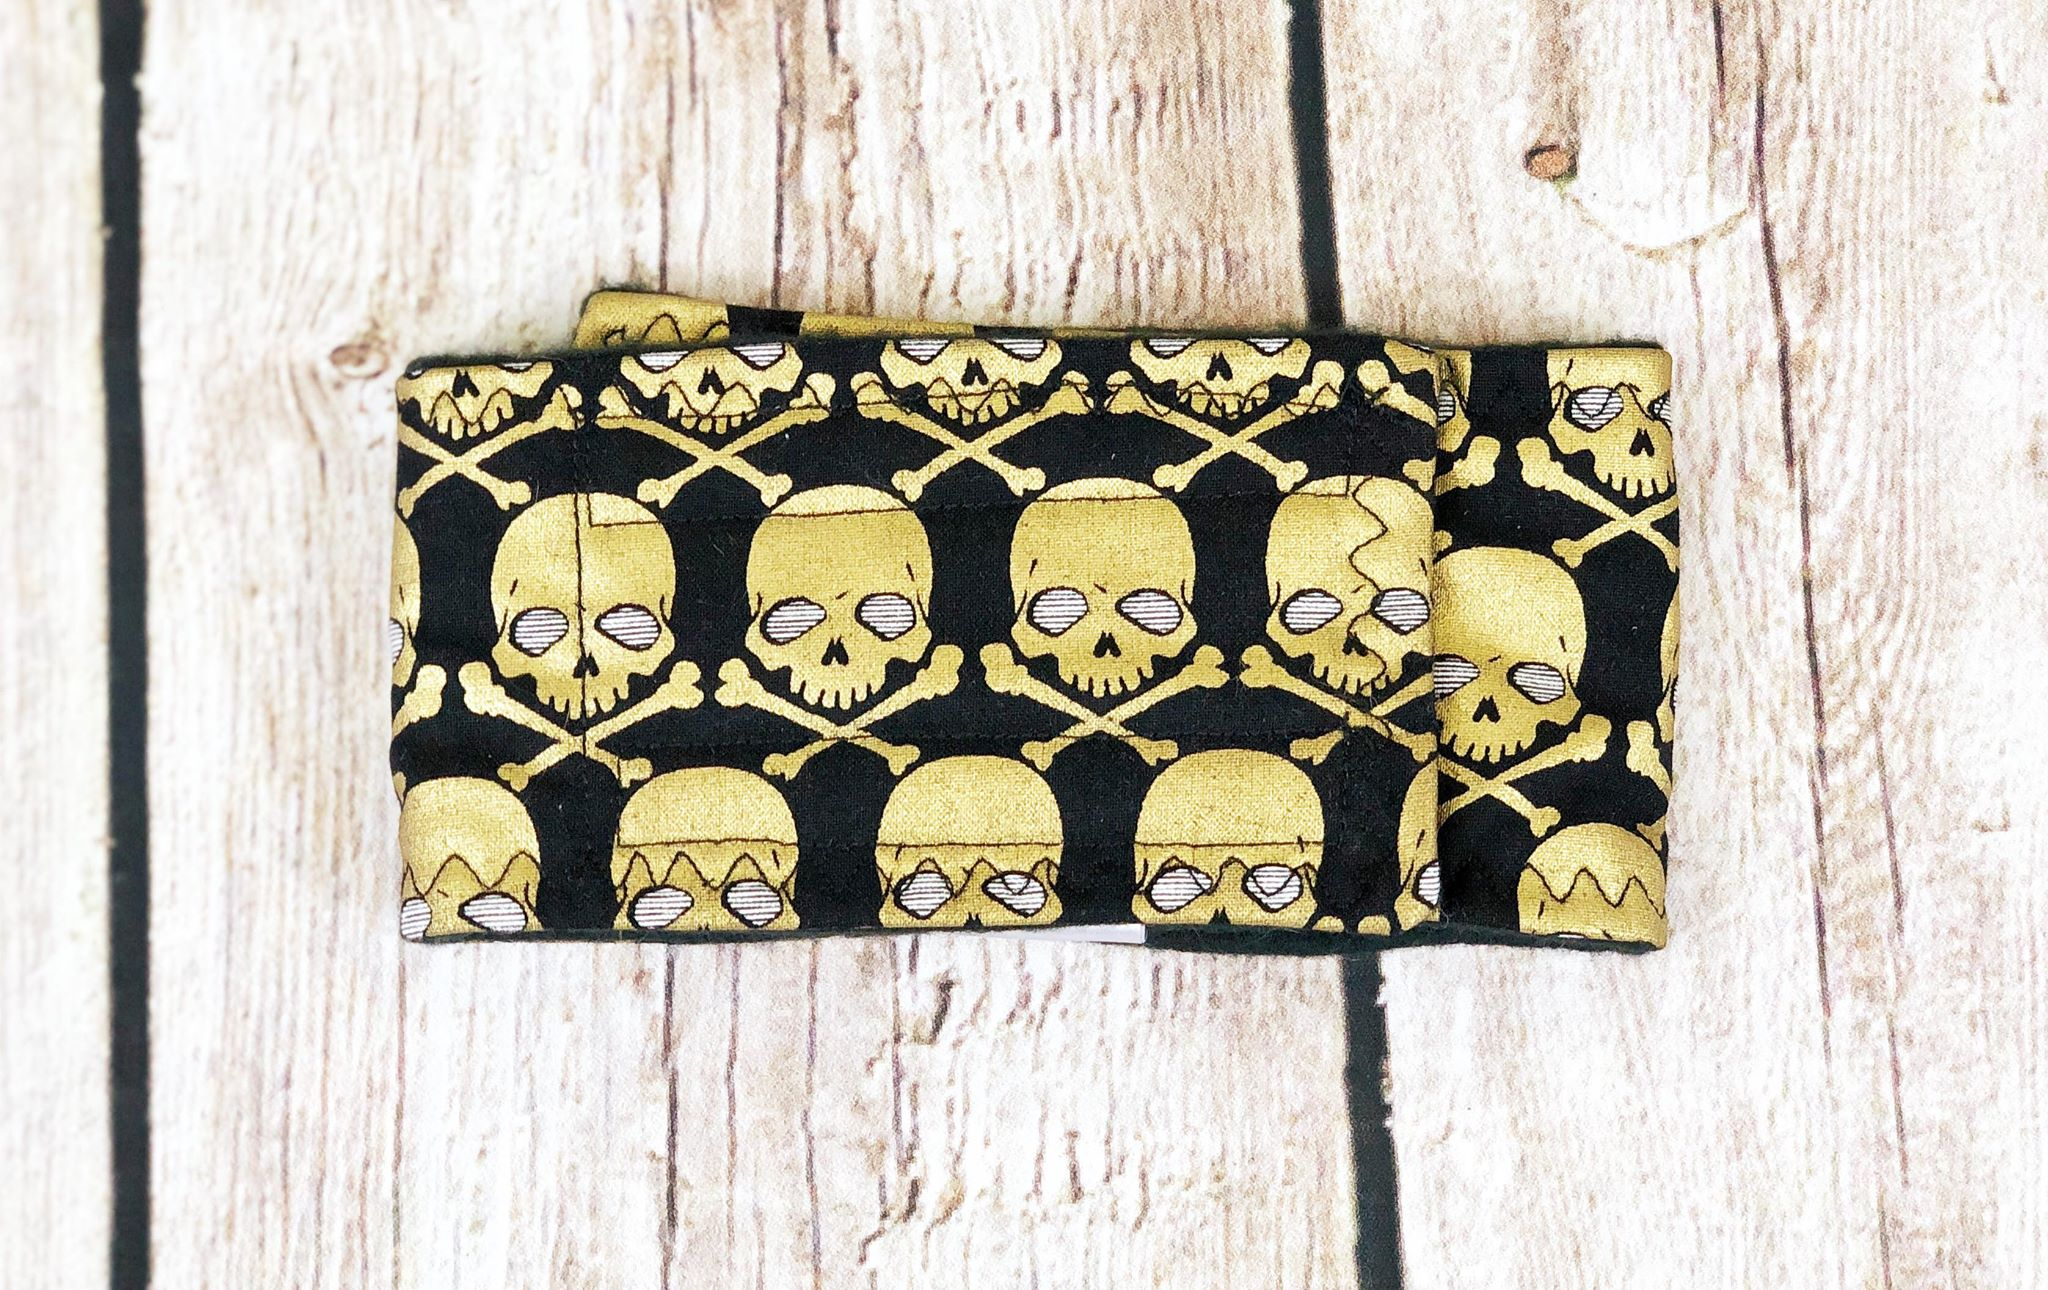 Dog Belly Band Diaper Metallic Gold Skulls Marking Incontinence  Washable Reusable Waterproof Wrap Extra wide